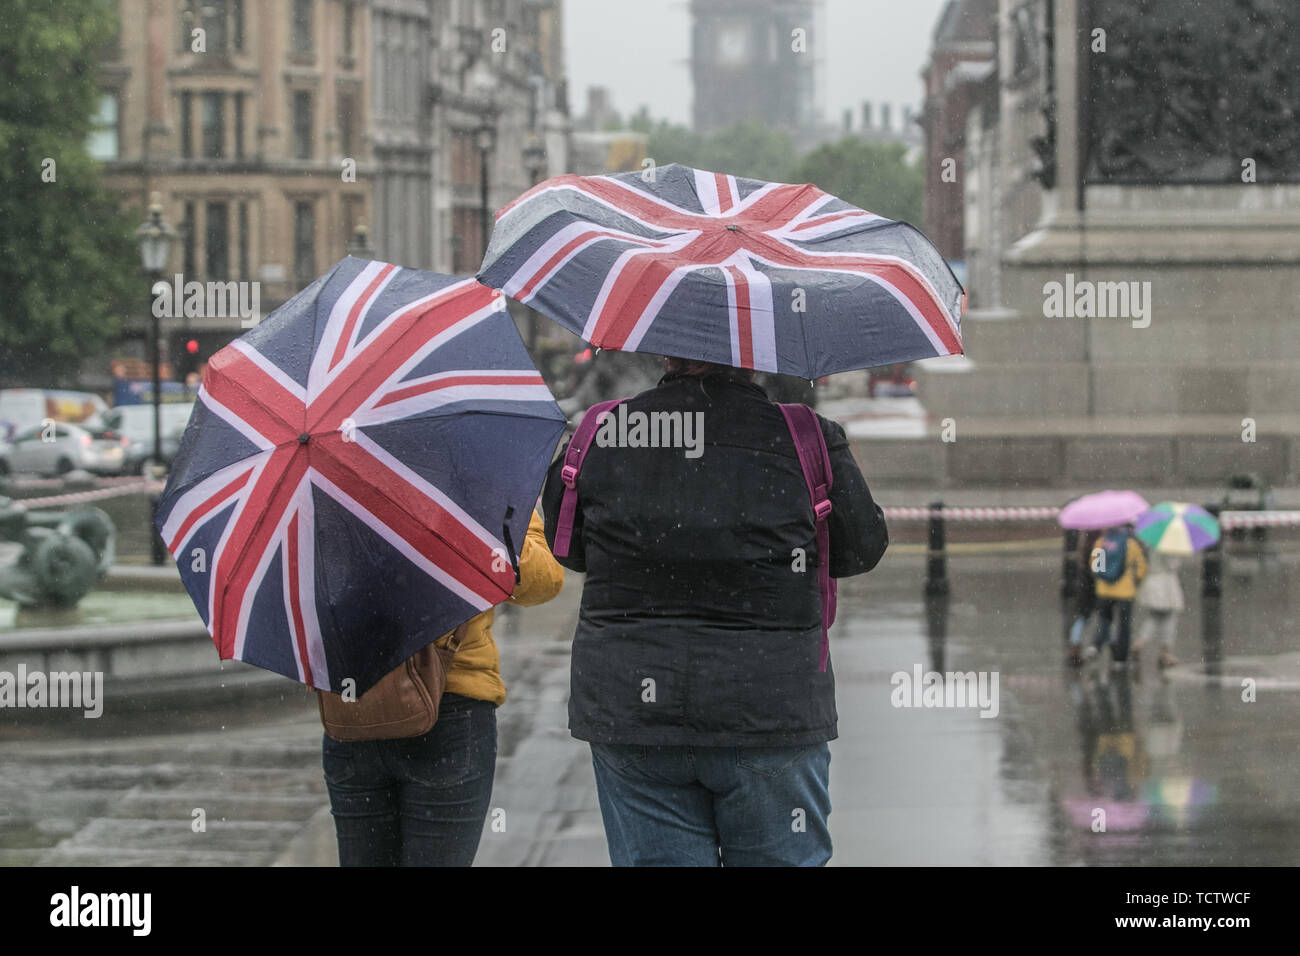 London, UK. 10th June, 2019. Pedestrians brave the heavy rain in Trafalgar Square on a cold and wet day in London Credit: amer ghazzal/Alamy Live News Stock Photo